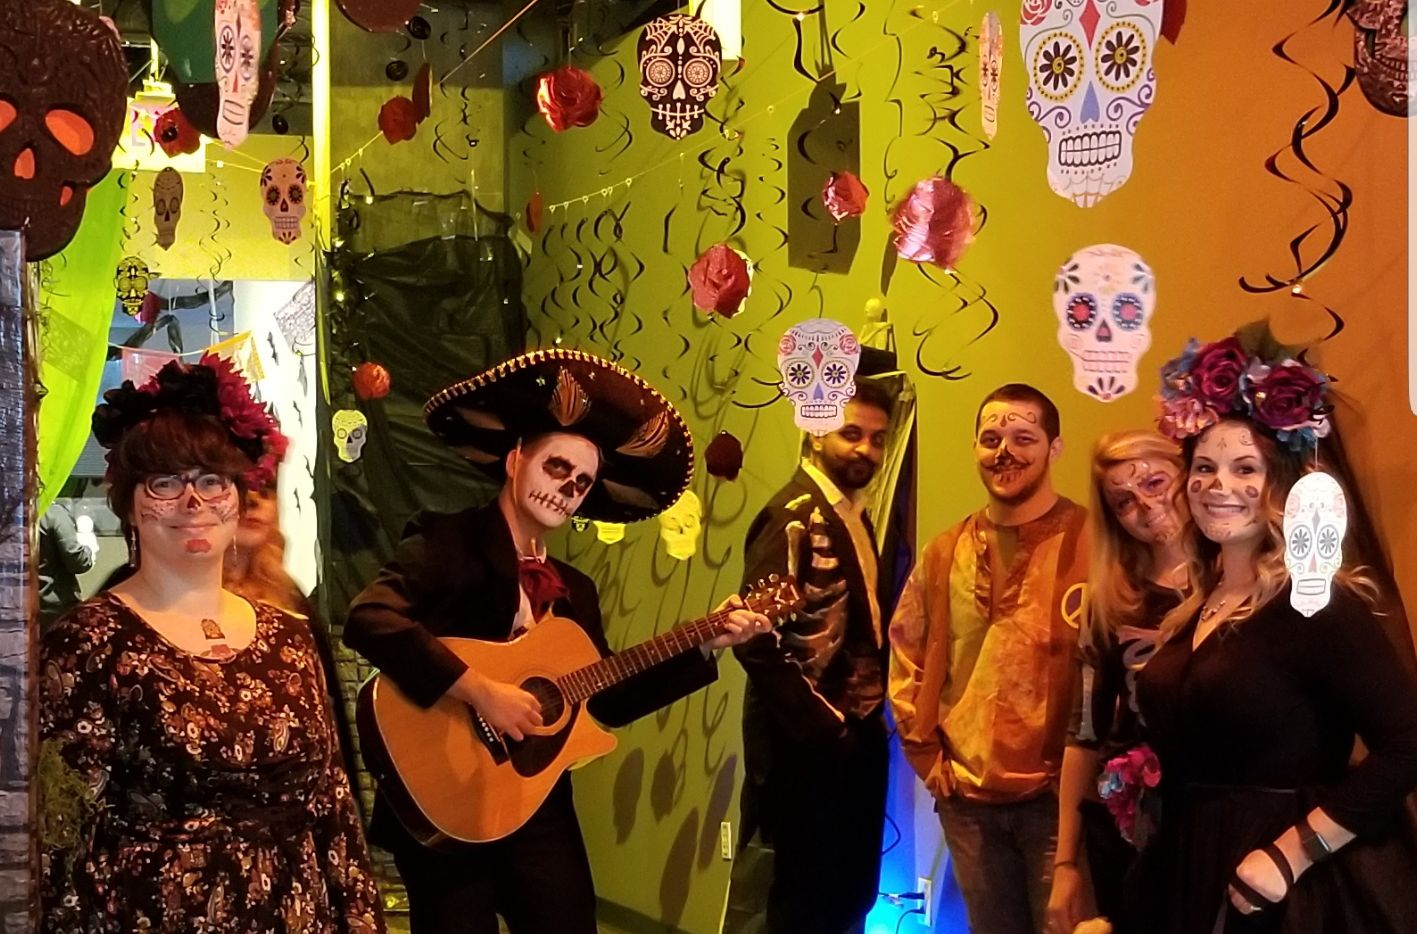 The information technology team won last year's Halloween contest at WebTPA, an AmWINS Group Co. in Irving. Corbin Greer, one of the company's operation analysts, is holding the guitar surrounded by developers, programmers and analysts.